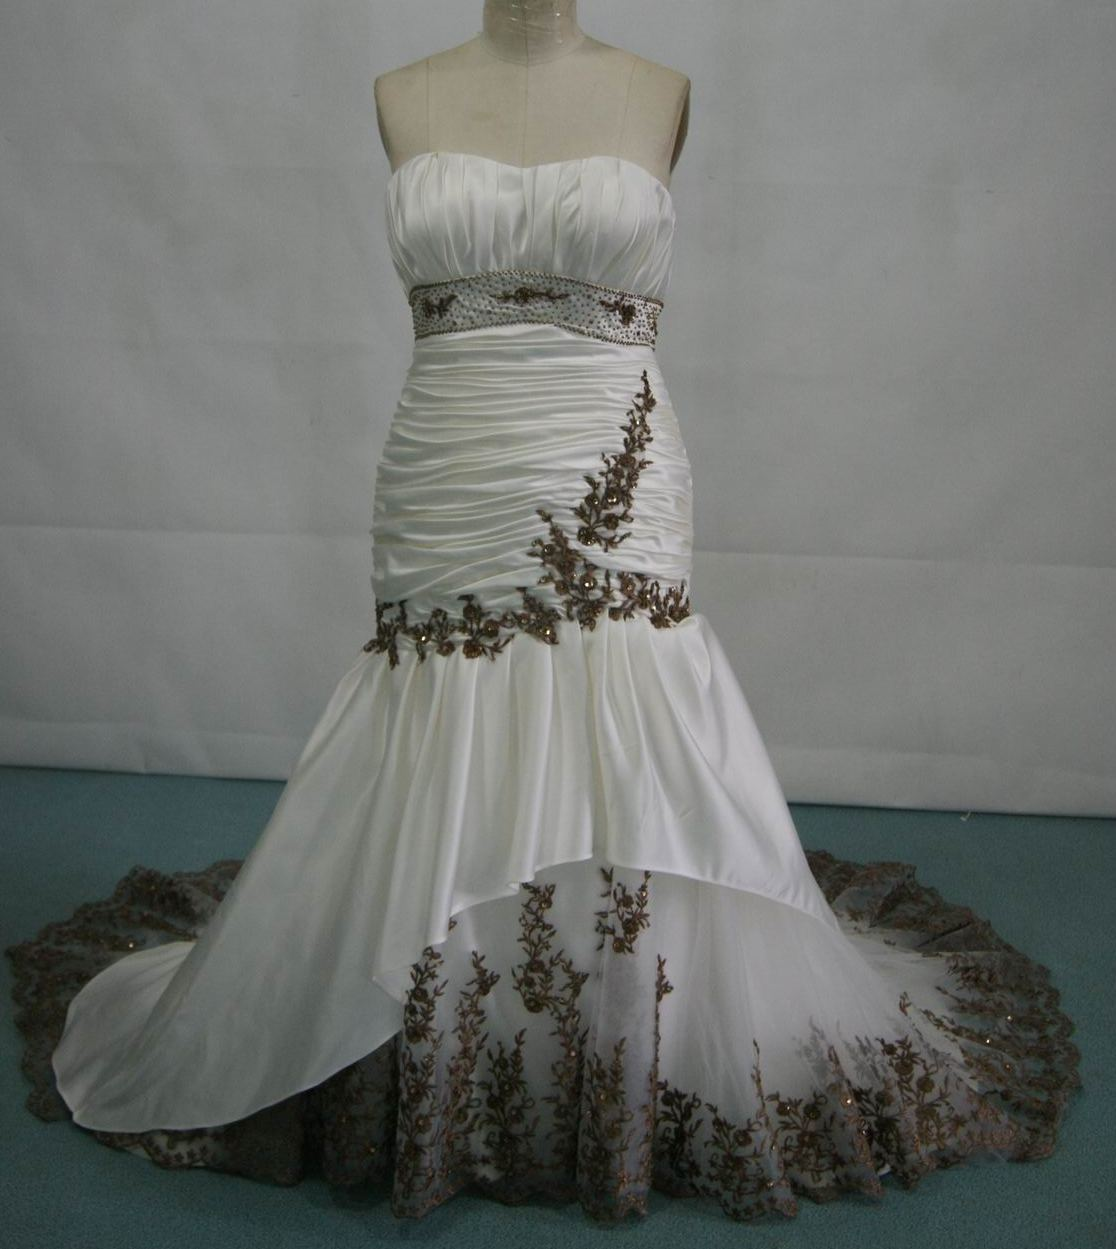 Ivory and Chocolate Strapless Ballroom Dresses